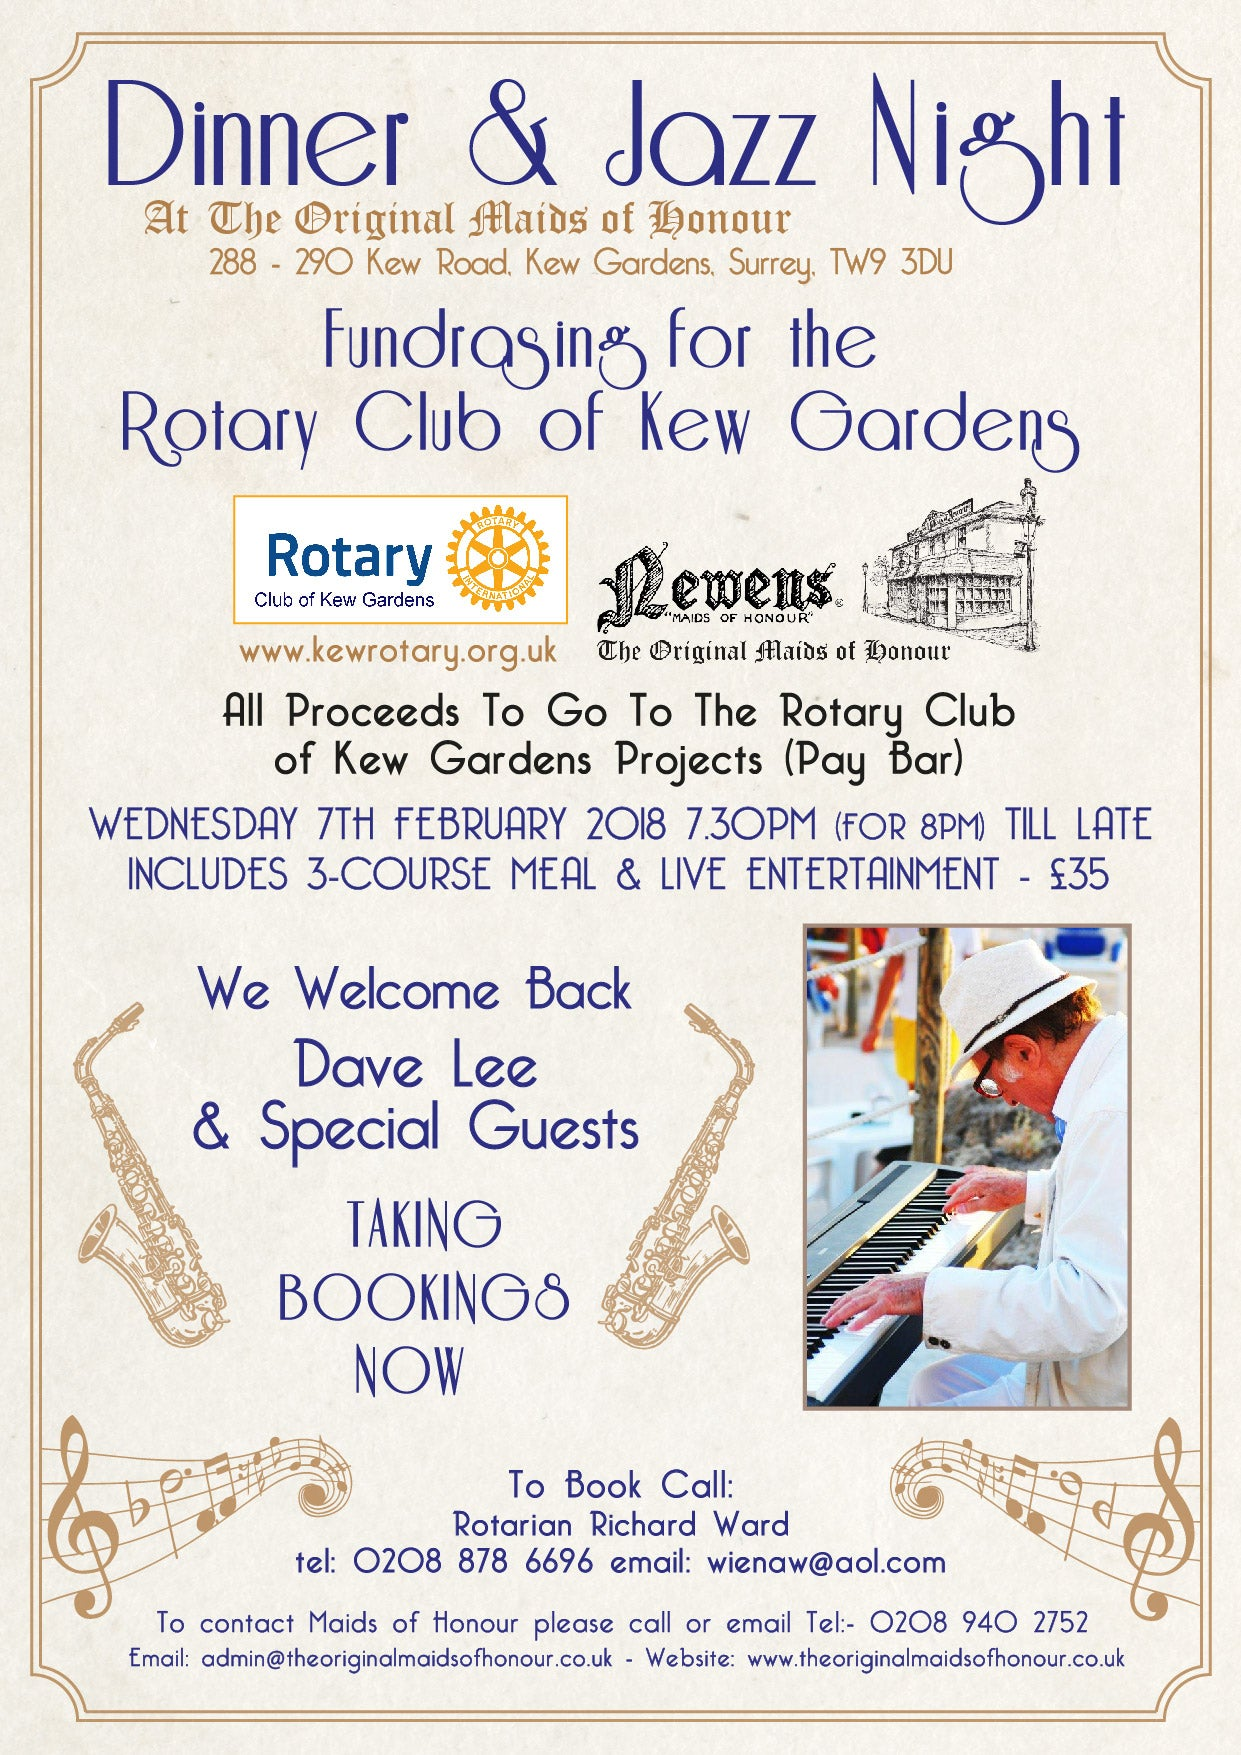 Dinner & Jazz Night | Fundraising for the Rotary Club WEDNESDAY 7TH FEBRUARY 2018